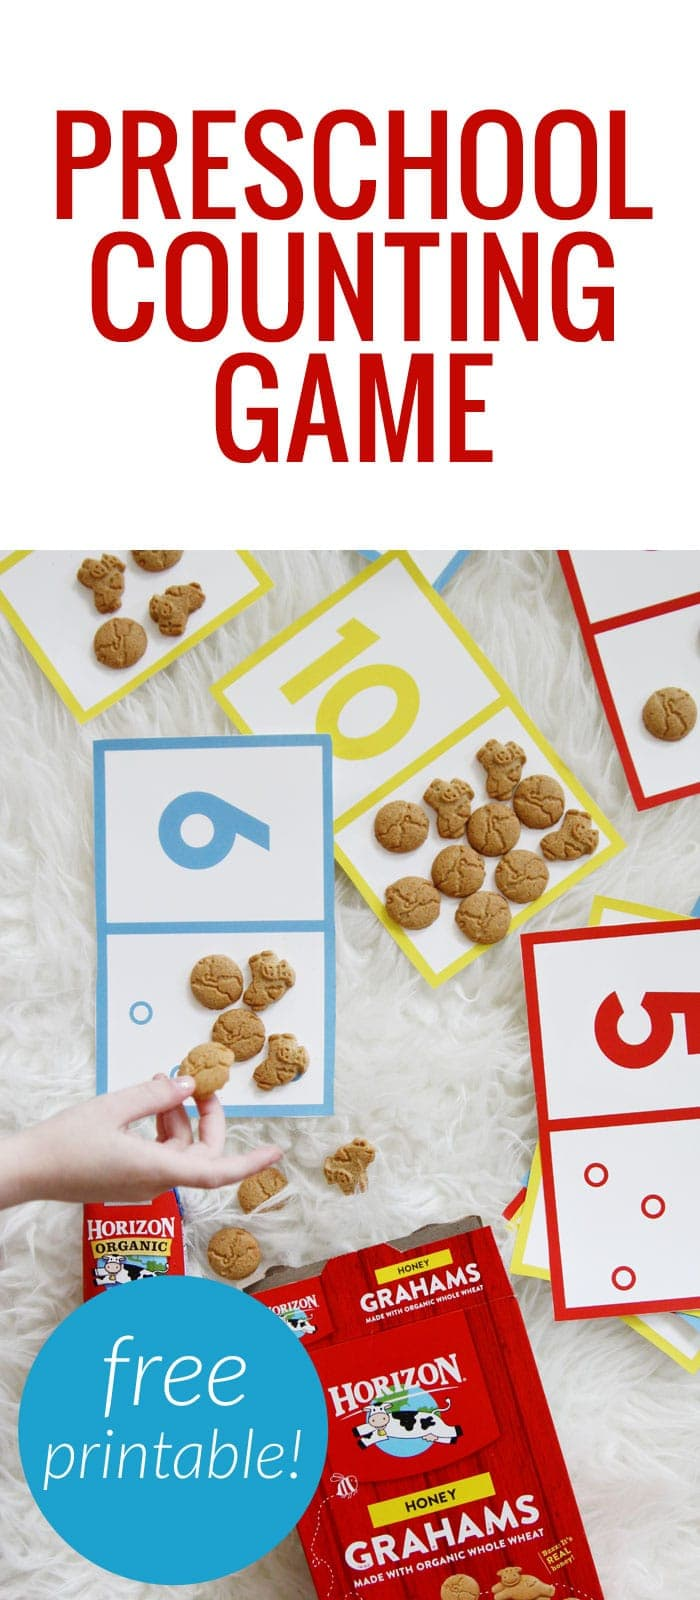 Preschool counting game - cut and print out the cards and have kids count the dots with snacks and recognize numbers! #HorizonOrganic @HorizonOrganic